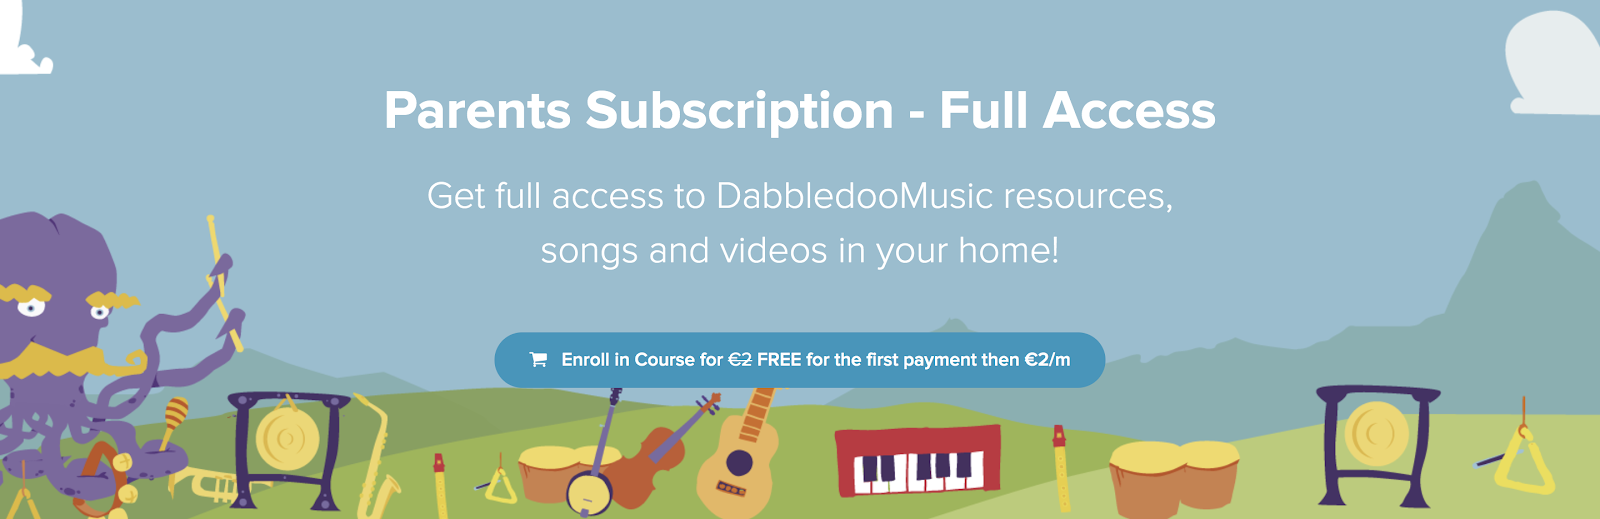 DabbledooMusic Parent's Course - Making music at home